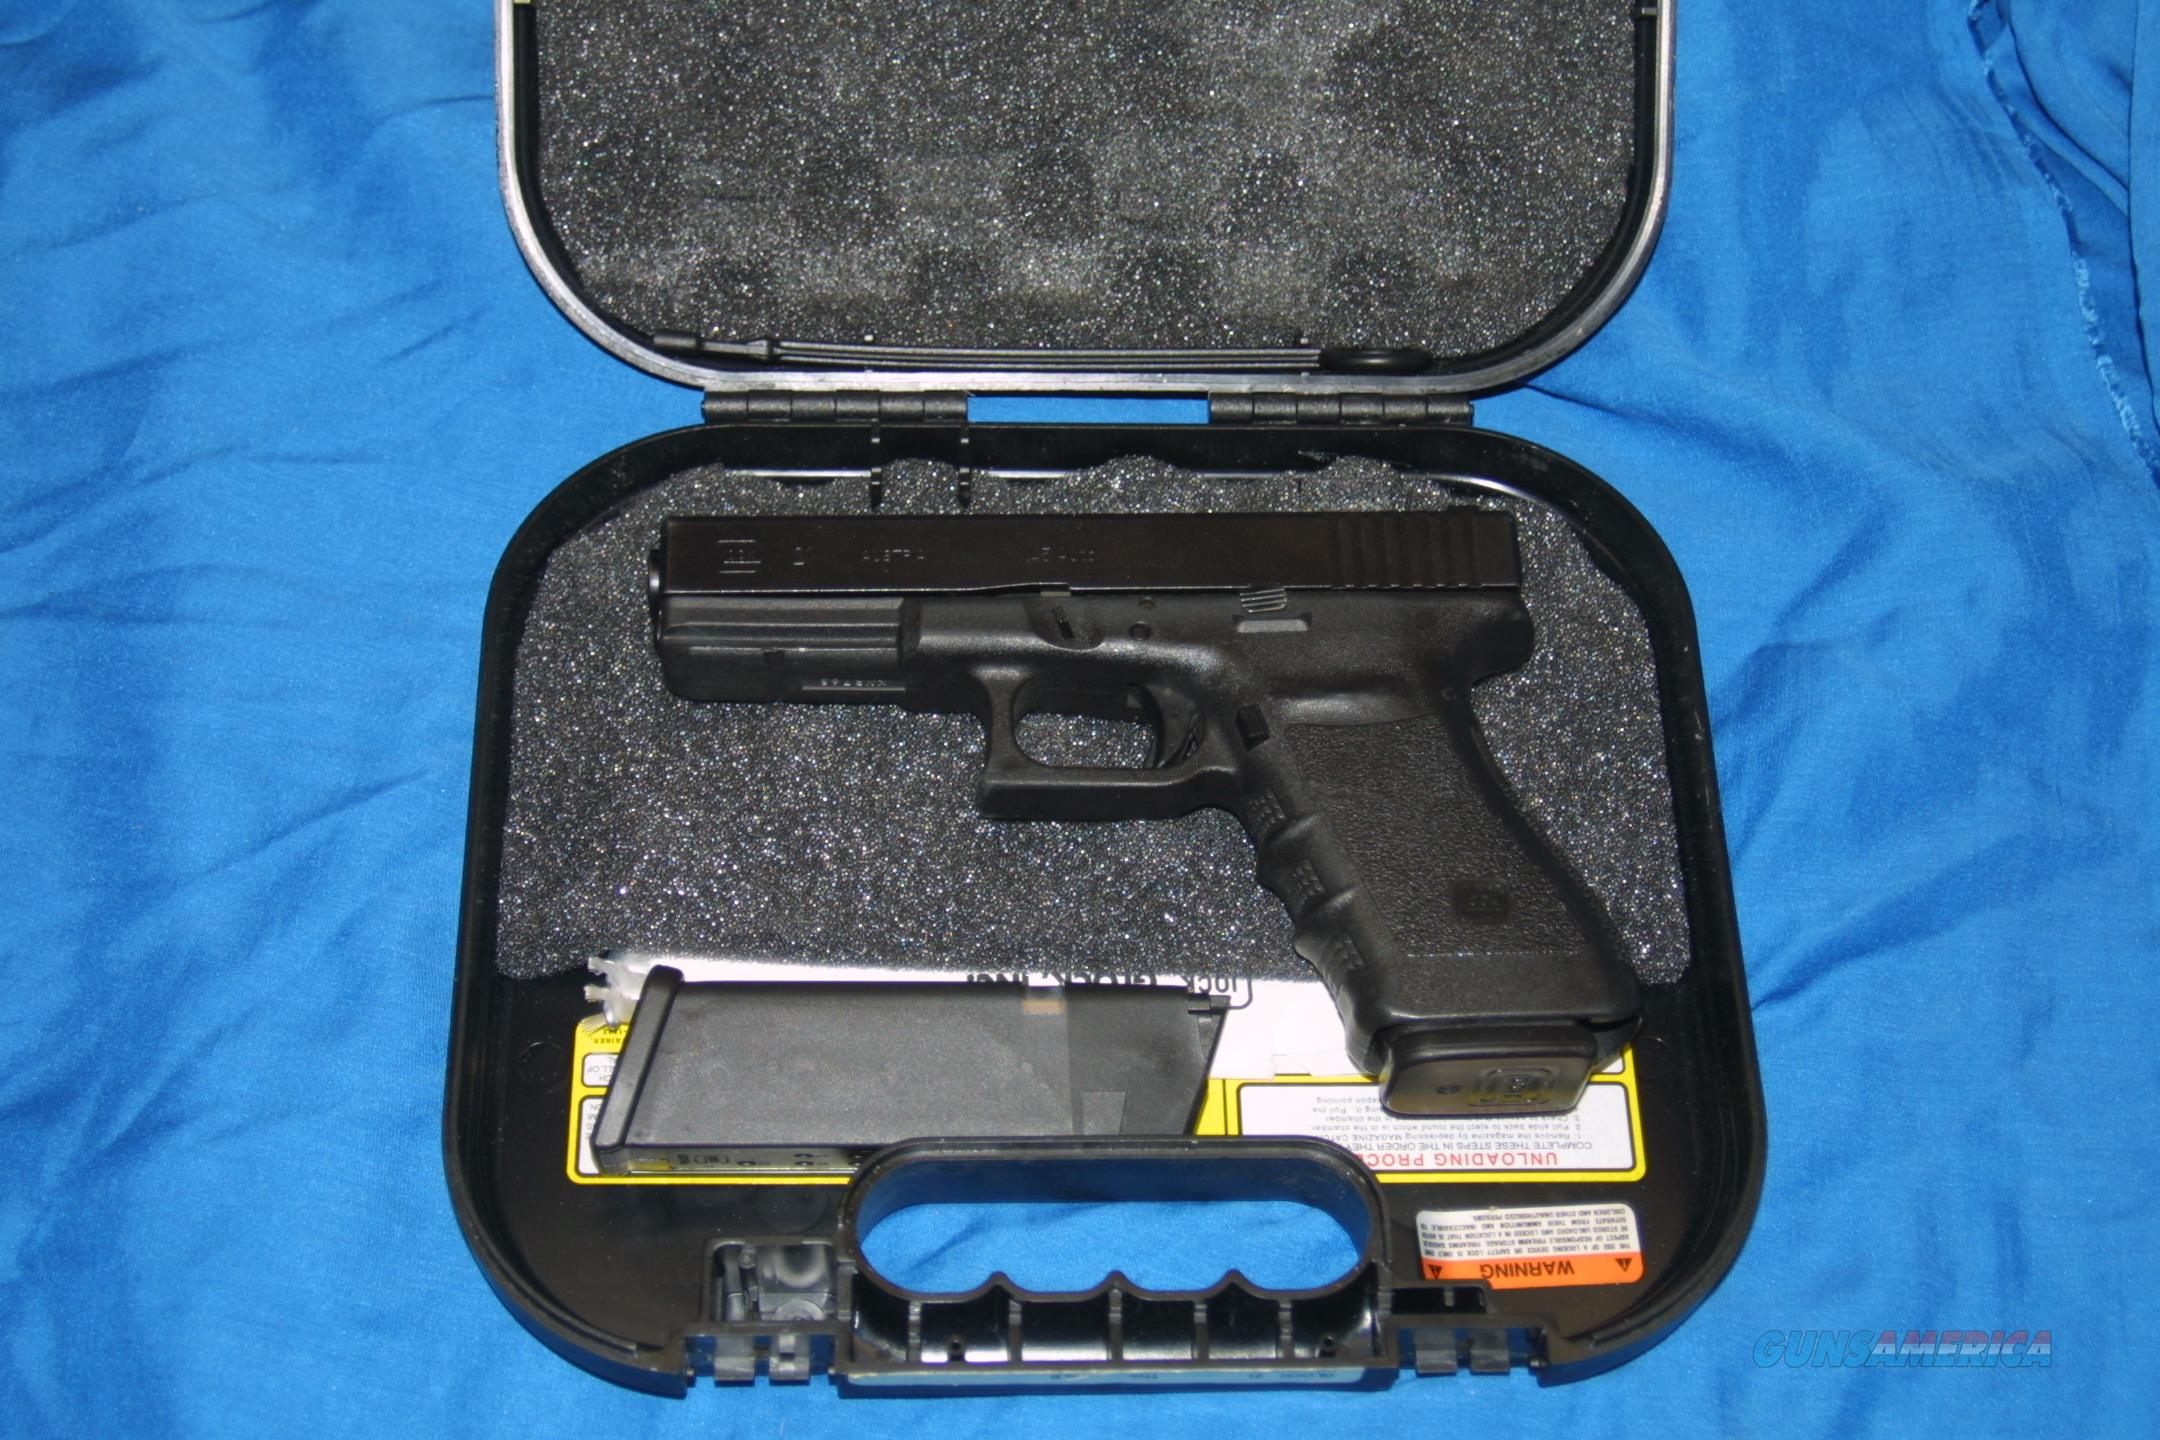 USED  GLOCK 21HI-CAP. GEN 3 IN 45ACP . TRIJICON NIGHT SIGHTS. LAW ENFORCEMENT TRADE IN. VERY GOOD TO EXCELLENT CONDITION  Guns > Pistols > Glock Pistols > 20/21